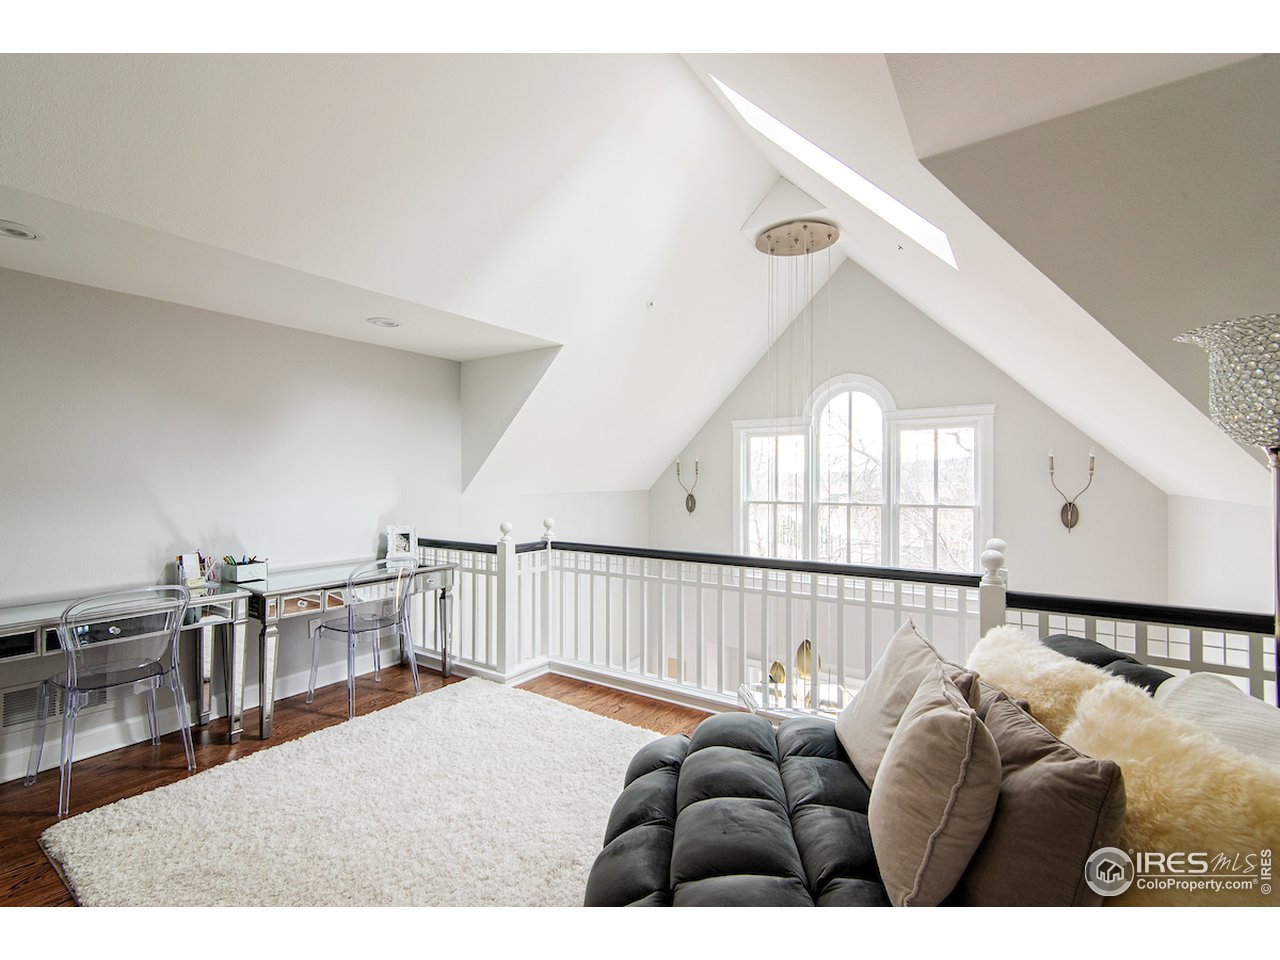 upstairs loft - great study area for homework sessions